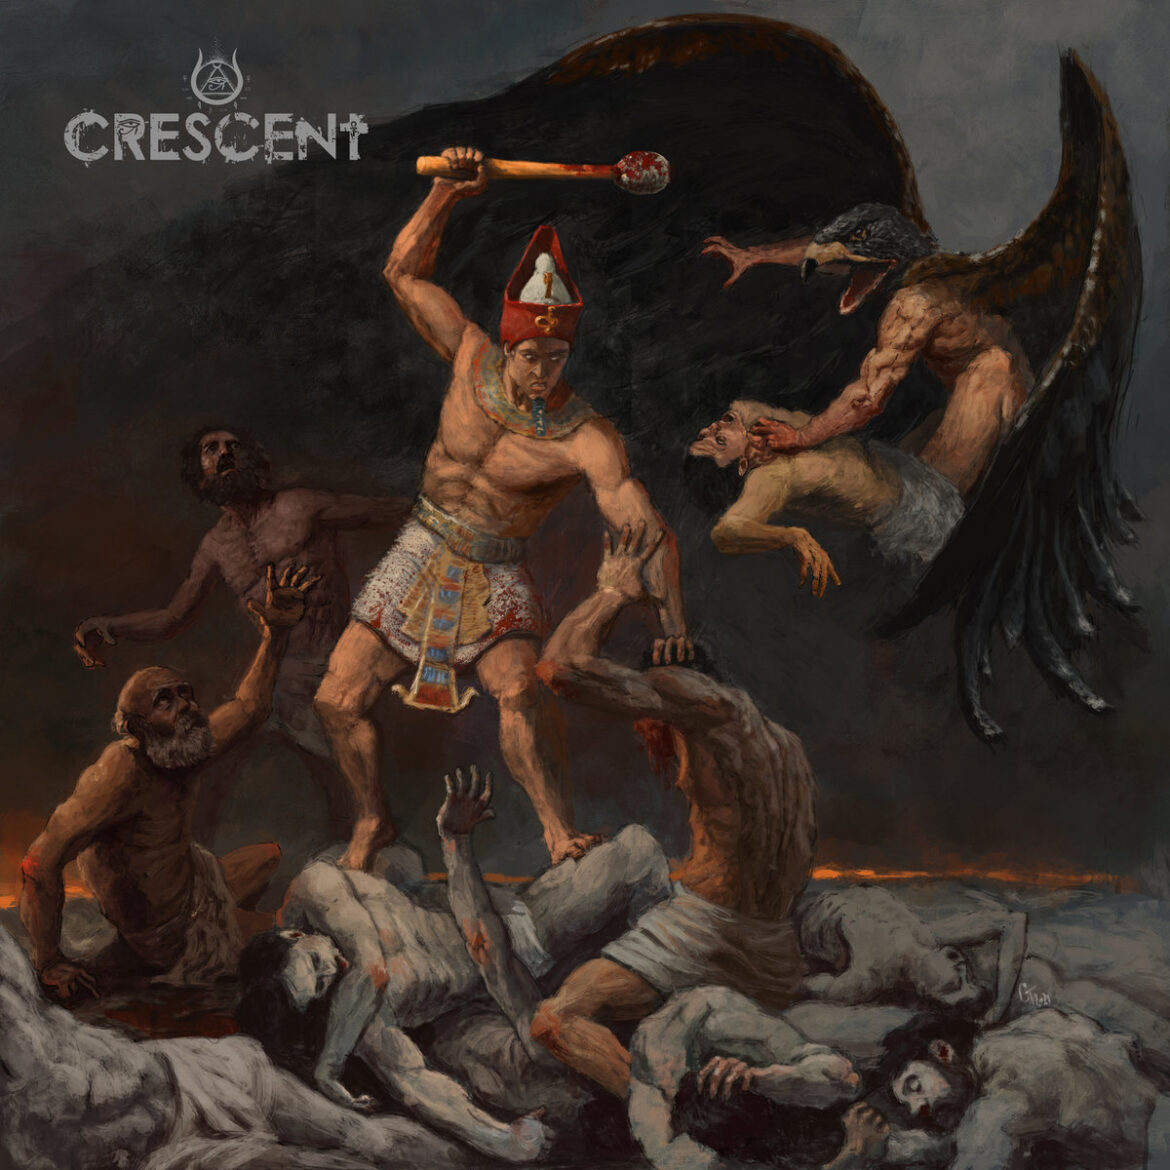 Crescent Carving – The Fires Of Akhet